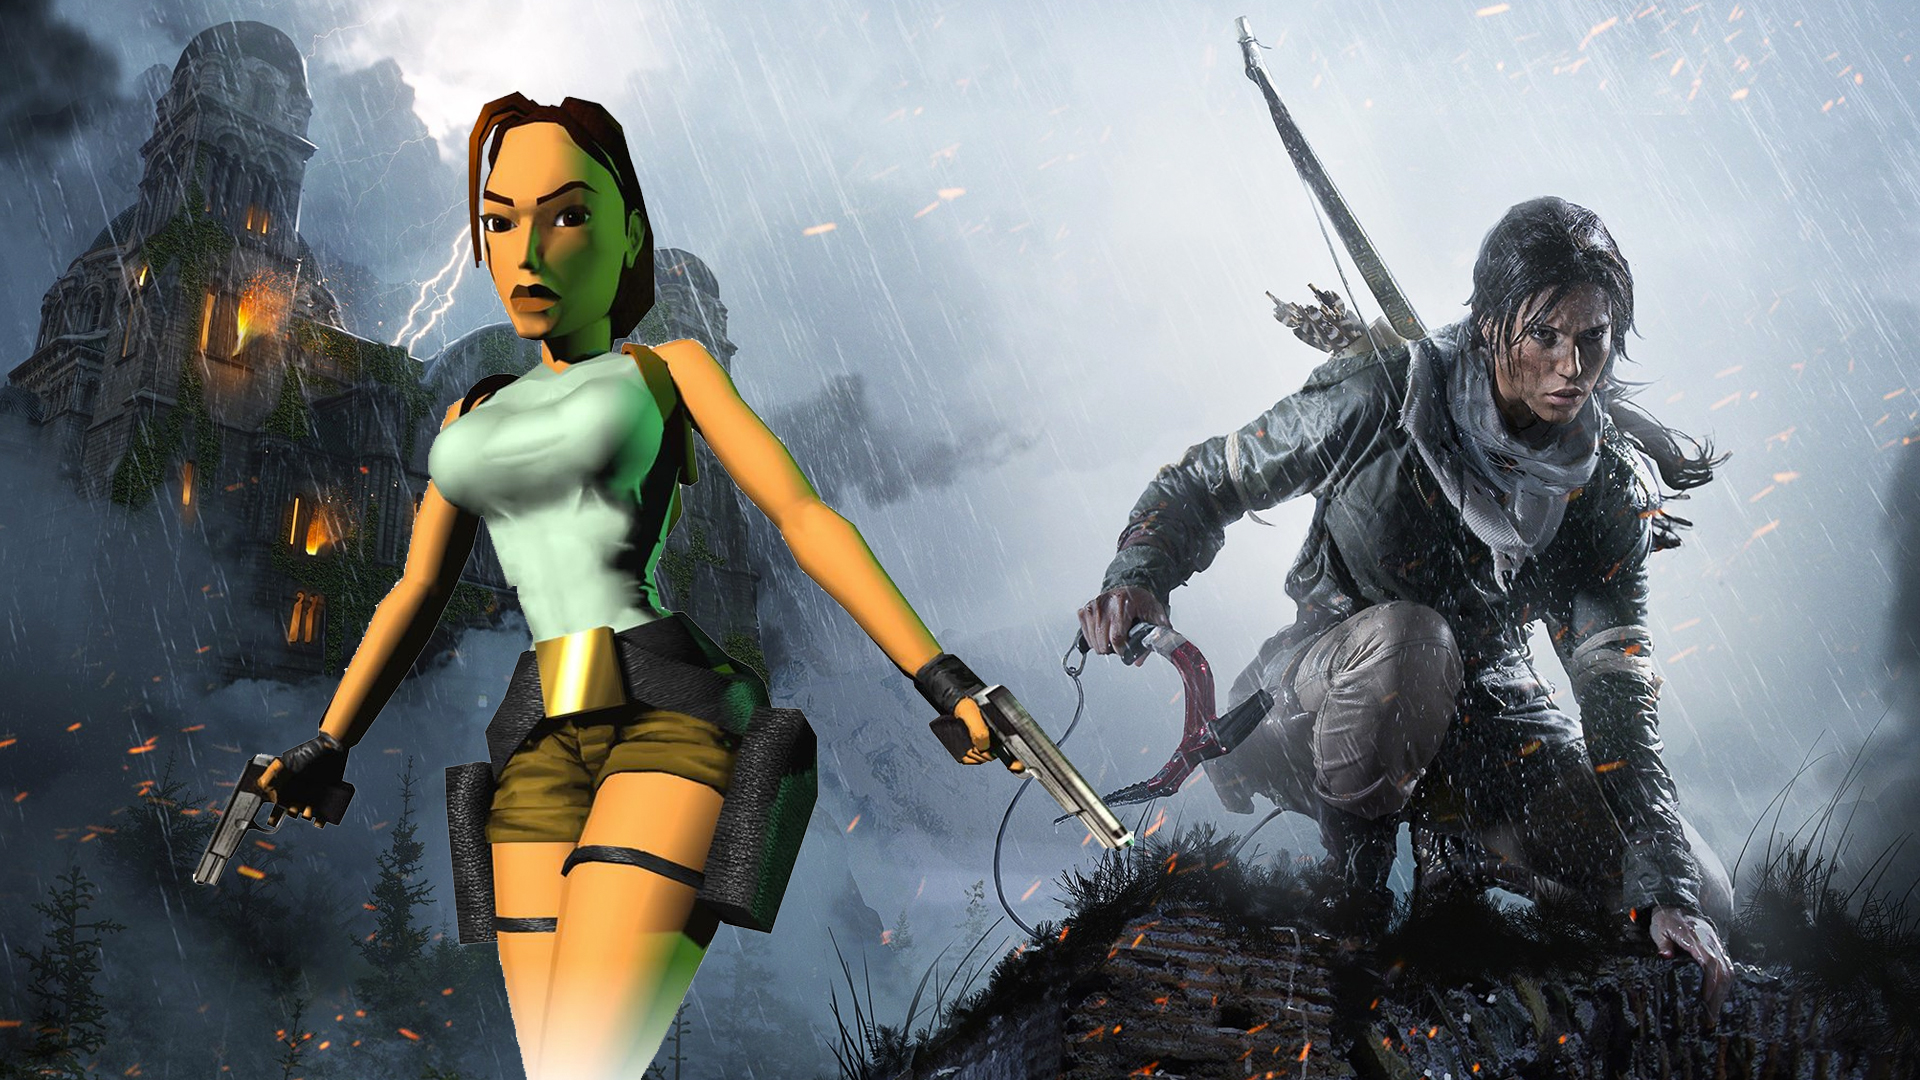 There S A New Tomb Raider Game But Not The One You Expected Or